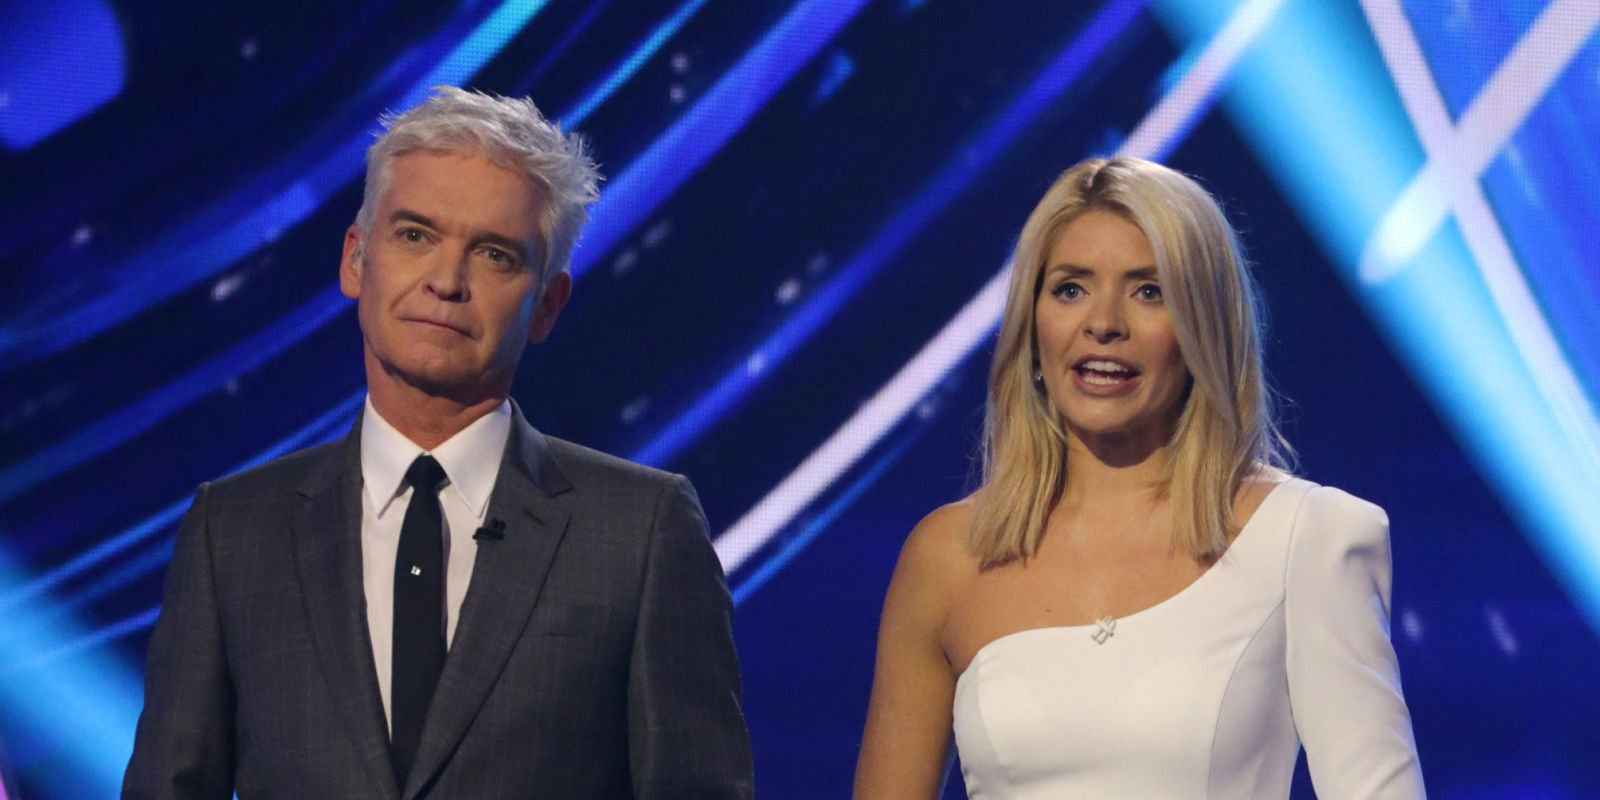 """Dancing on Ice fans call out judges' """"disrespectful"""" behaviour as they are accused of """"favouritism"""" in final"""